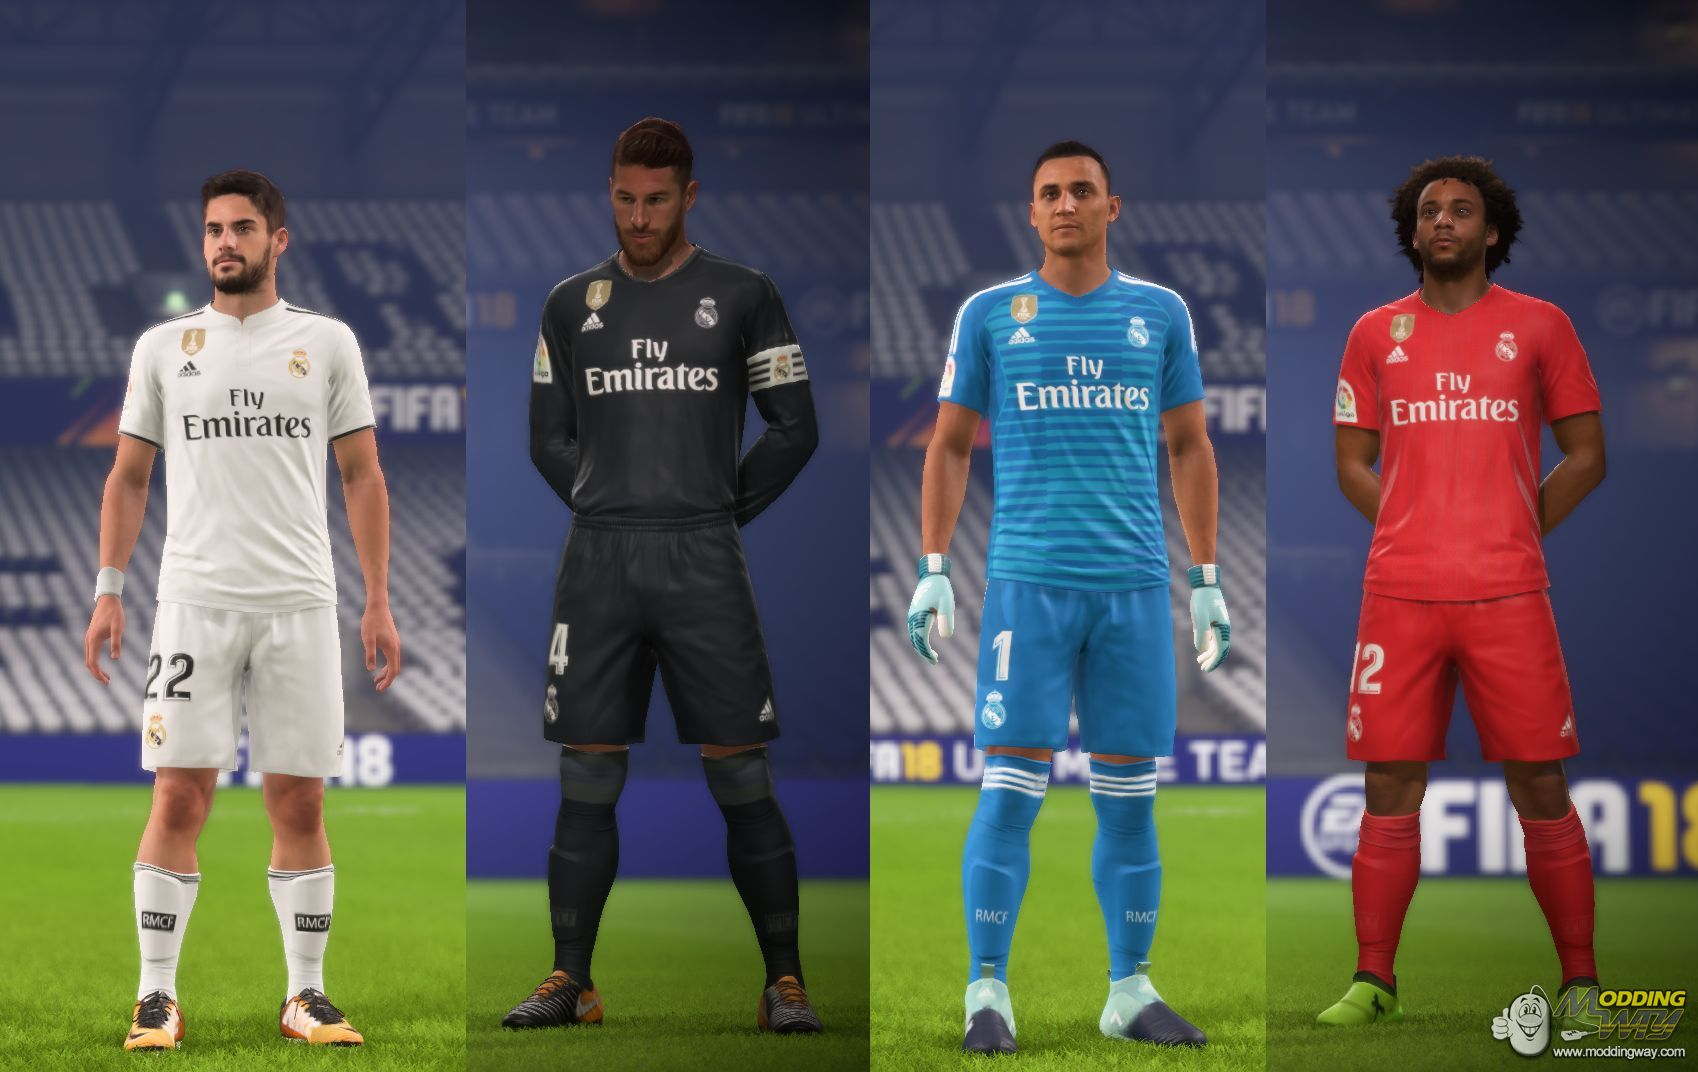 sneakers for cheap 13c76 07e97 Real Madrid kitpack 18-19 - FIFA 18 at ModdingWay